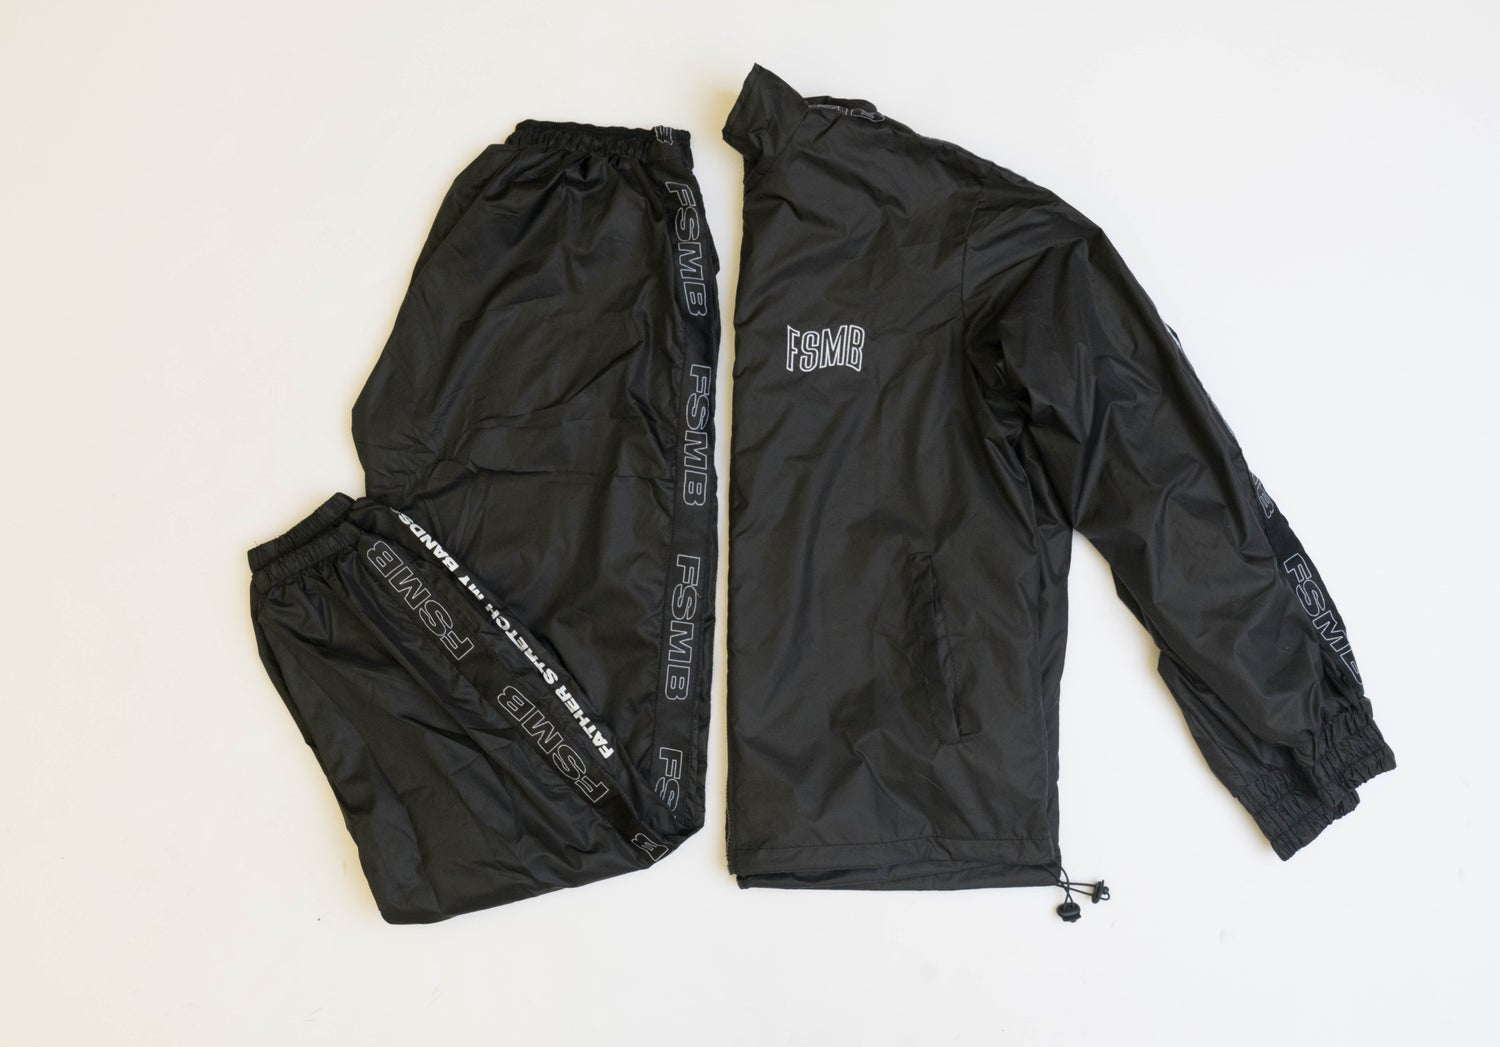 Image of FSMB® Nylon Windbreaker suit